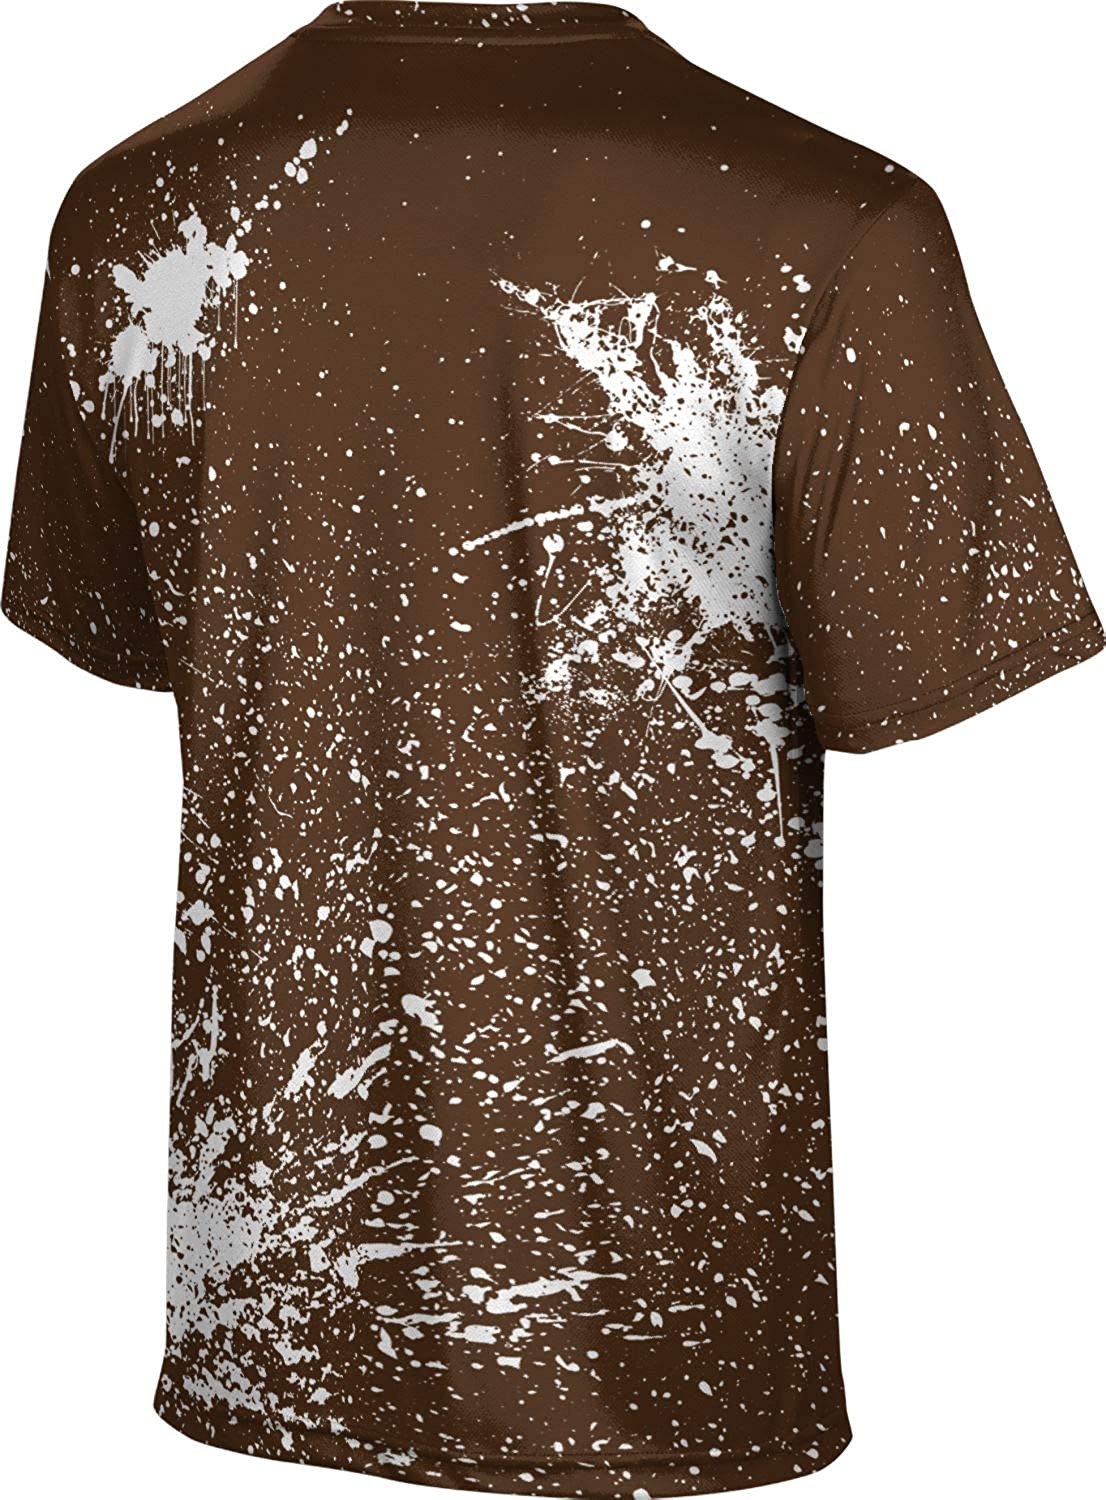 Splatter ProSphere Brown University Boys Performance T-Shirt